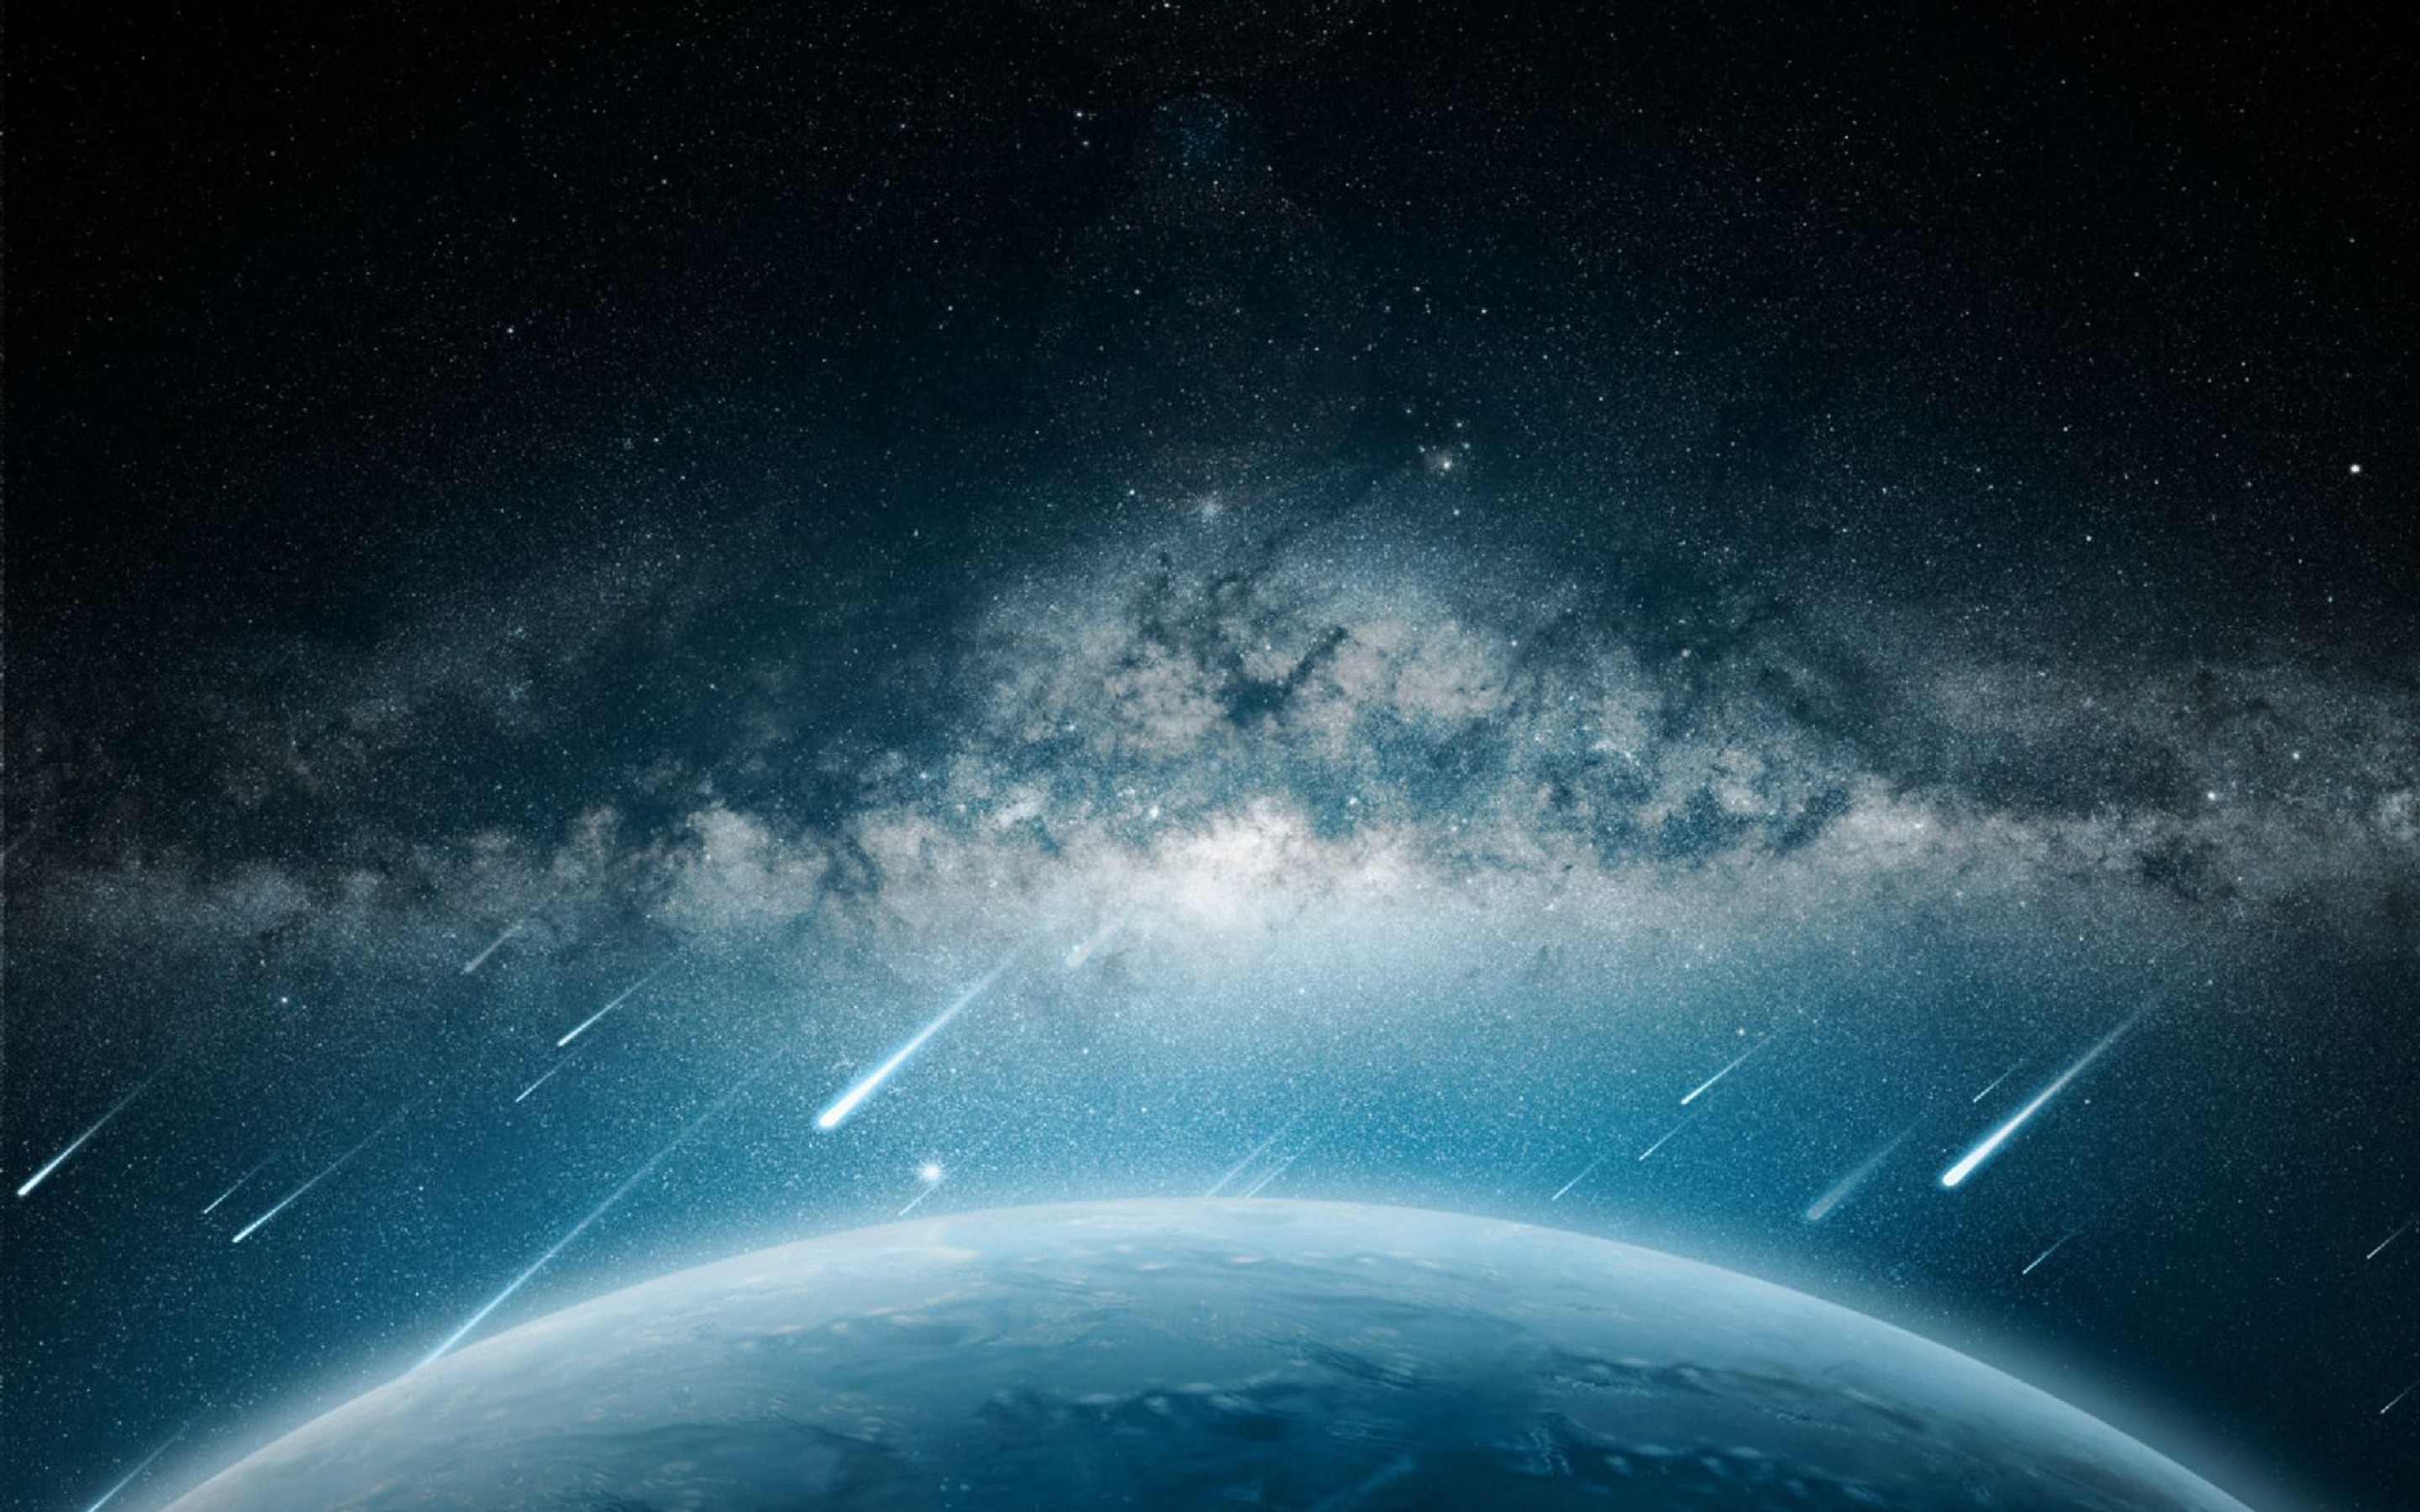 Space Meteorite Planet Rain Mac Wallpaper Download ...